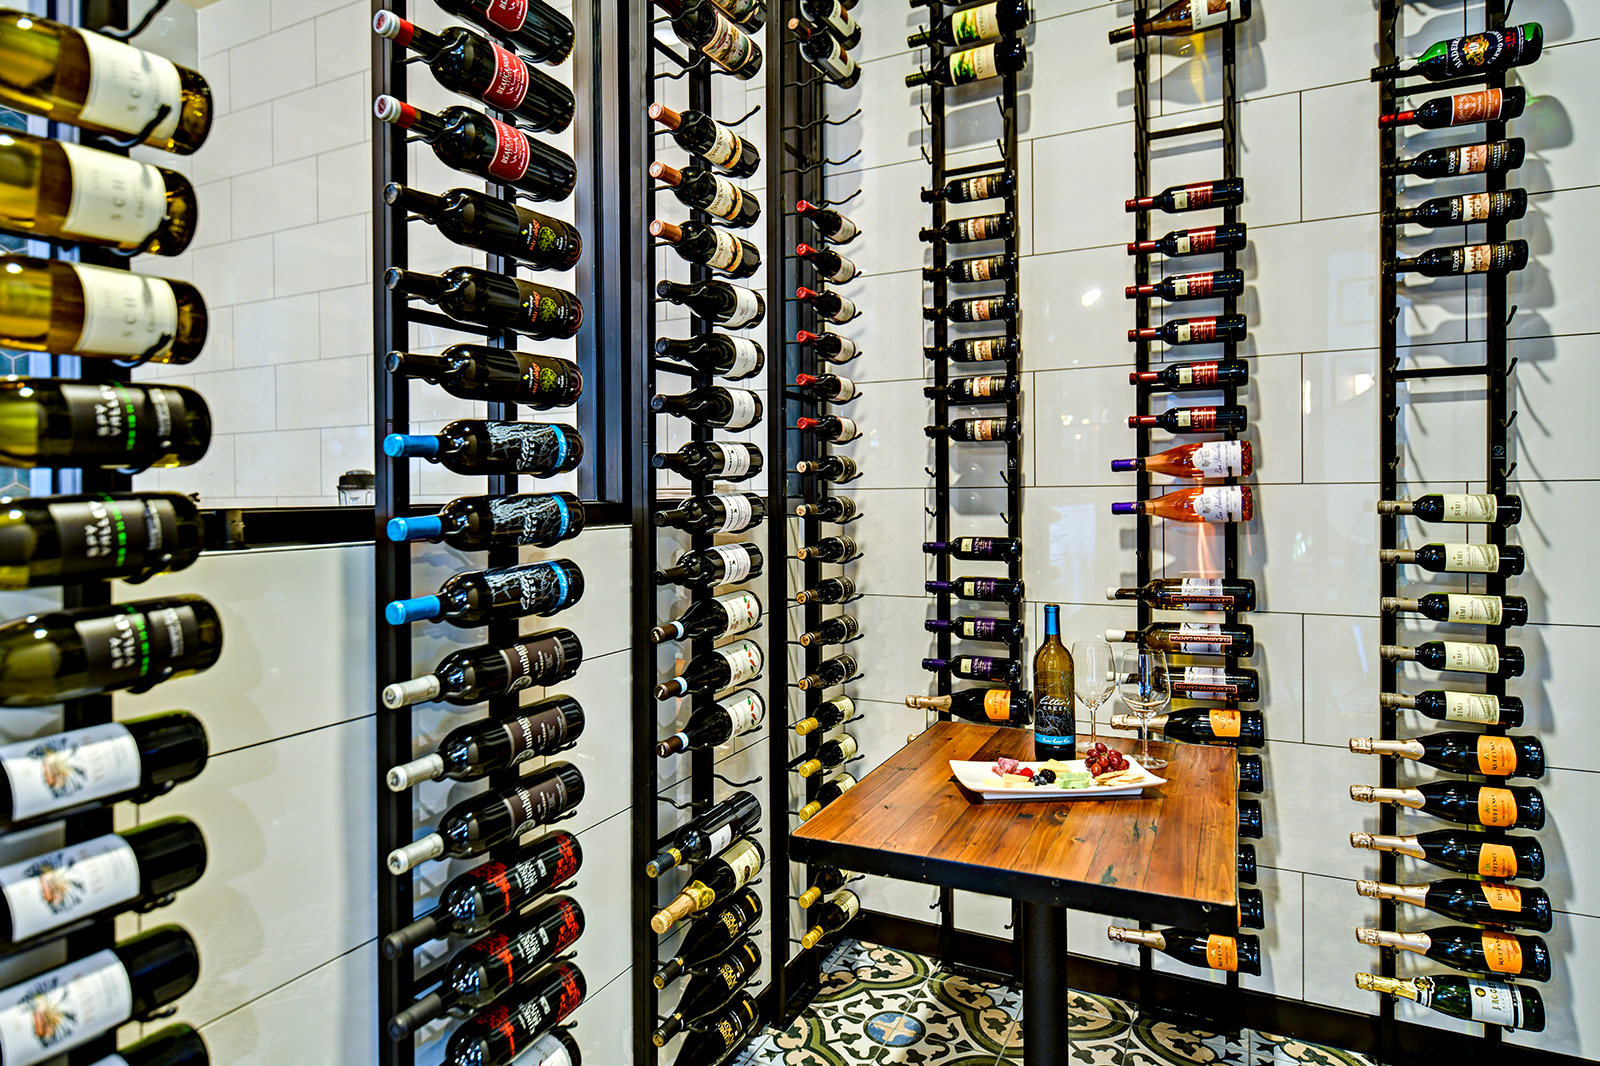 Wine storage at Trillium Restaurant